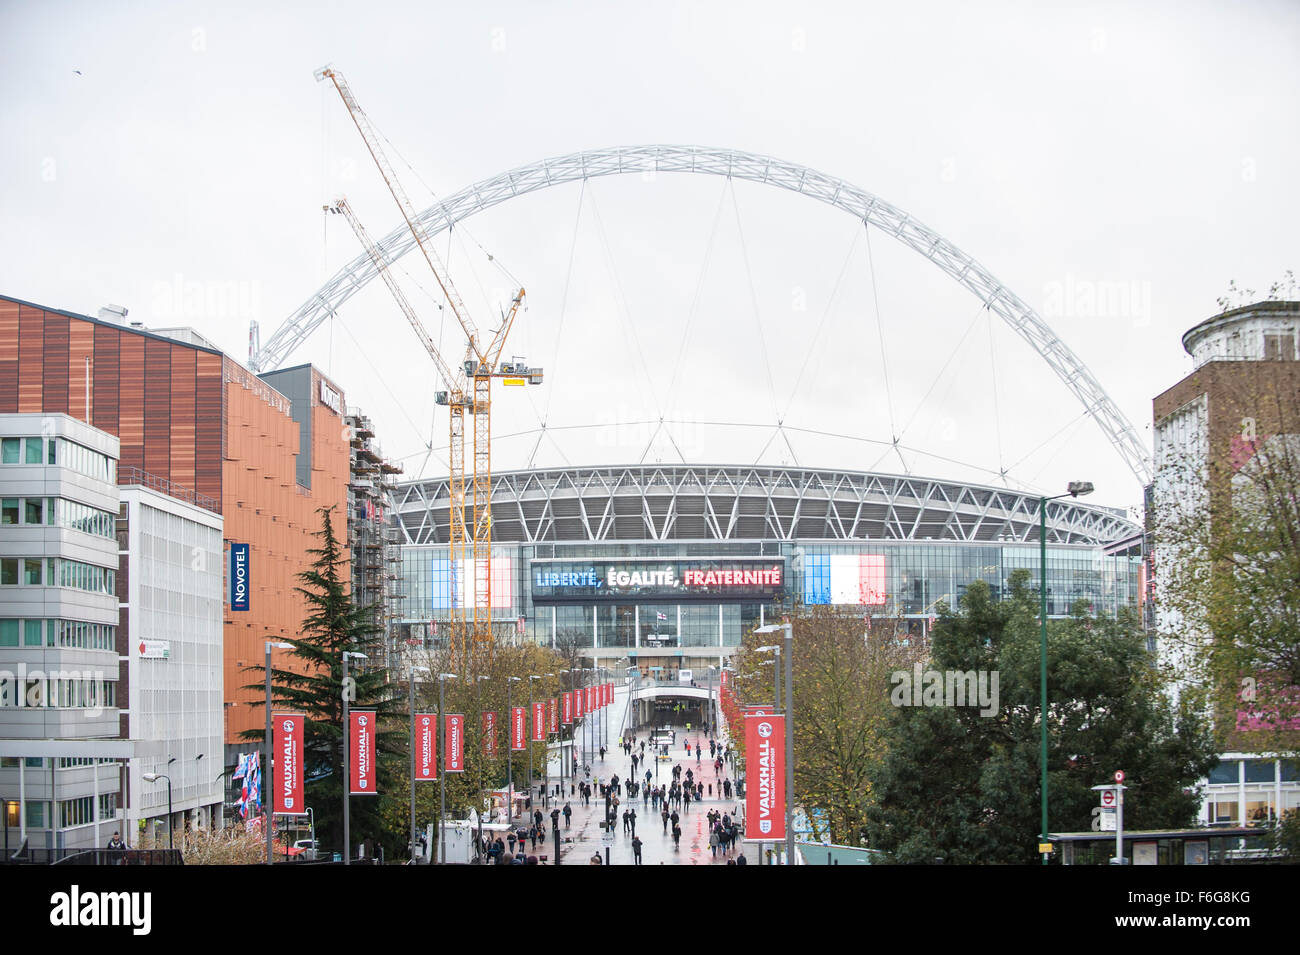 London, UK.  17 November 2015.  Crowds start arriving at Wembley Stadium ahead of the football friendly between - Stock Image